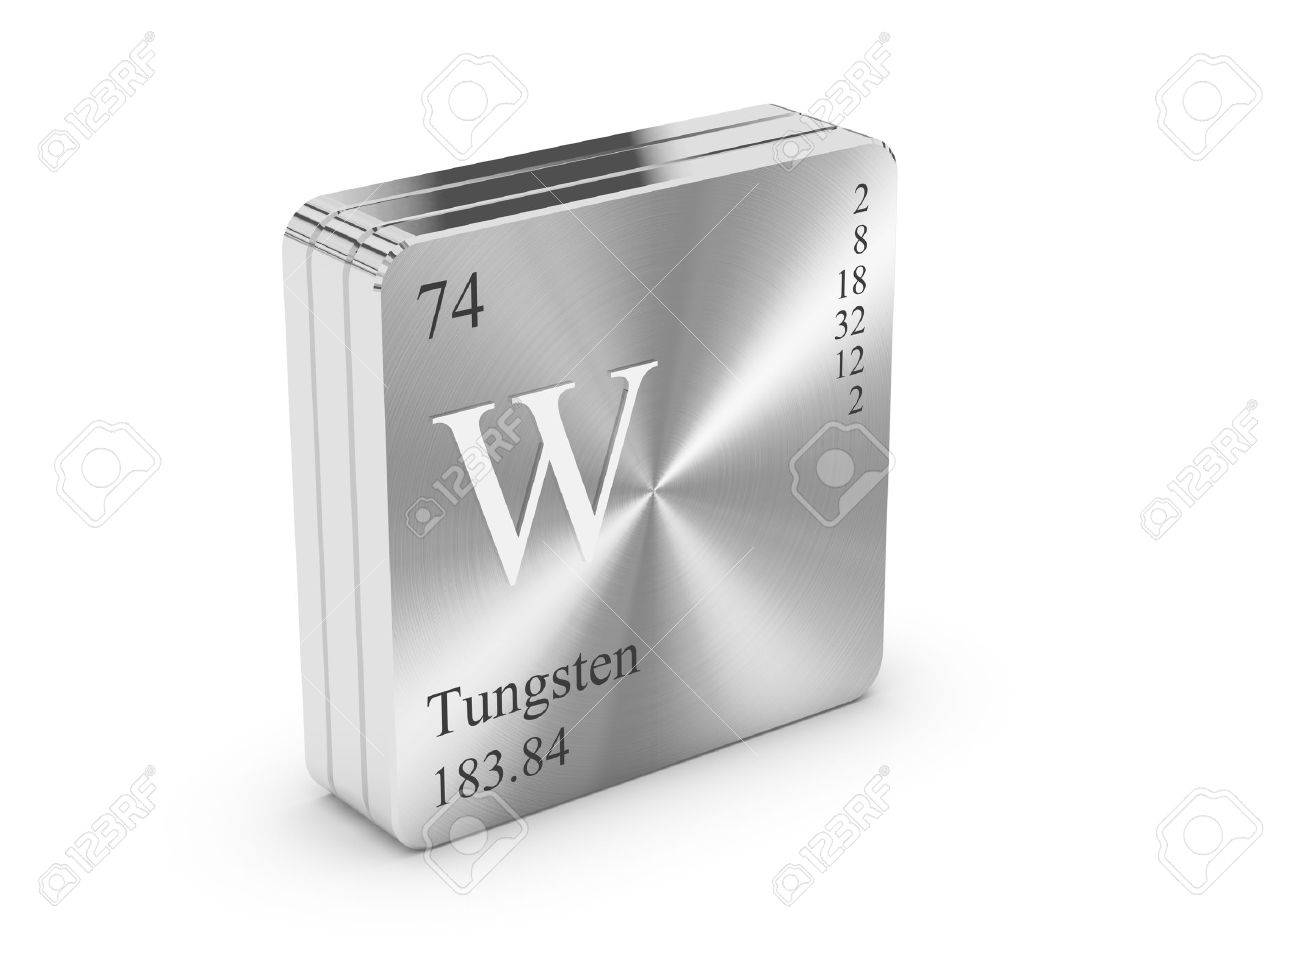 Tungsten periodic table image collections periodic table images tungsten element of the periodic table on metal steel block tungsten element of the periodic table gamestrikefo Choice Image